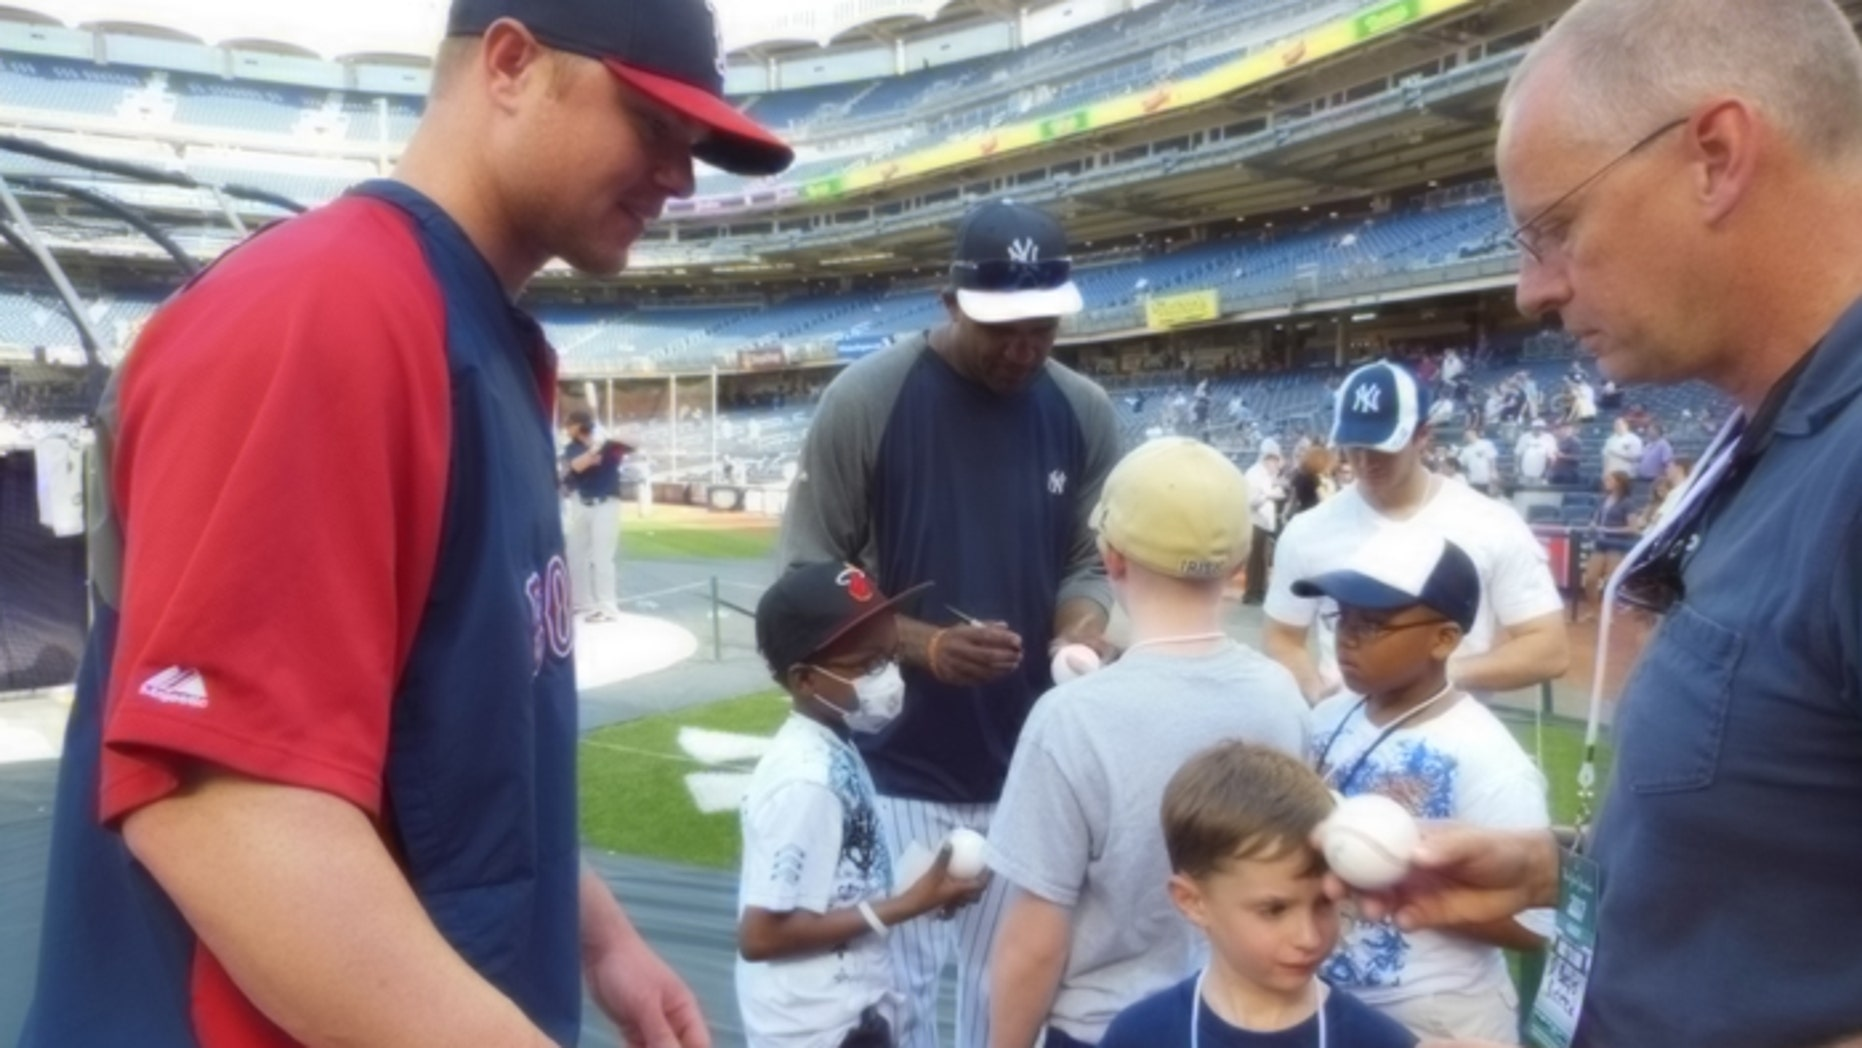 Red Sox ace Jon Lester makes time to sign autographs for kids with cancer, as does rival Yankees pitcher CC Sabathia (background).